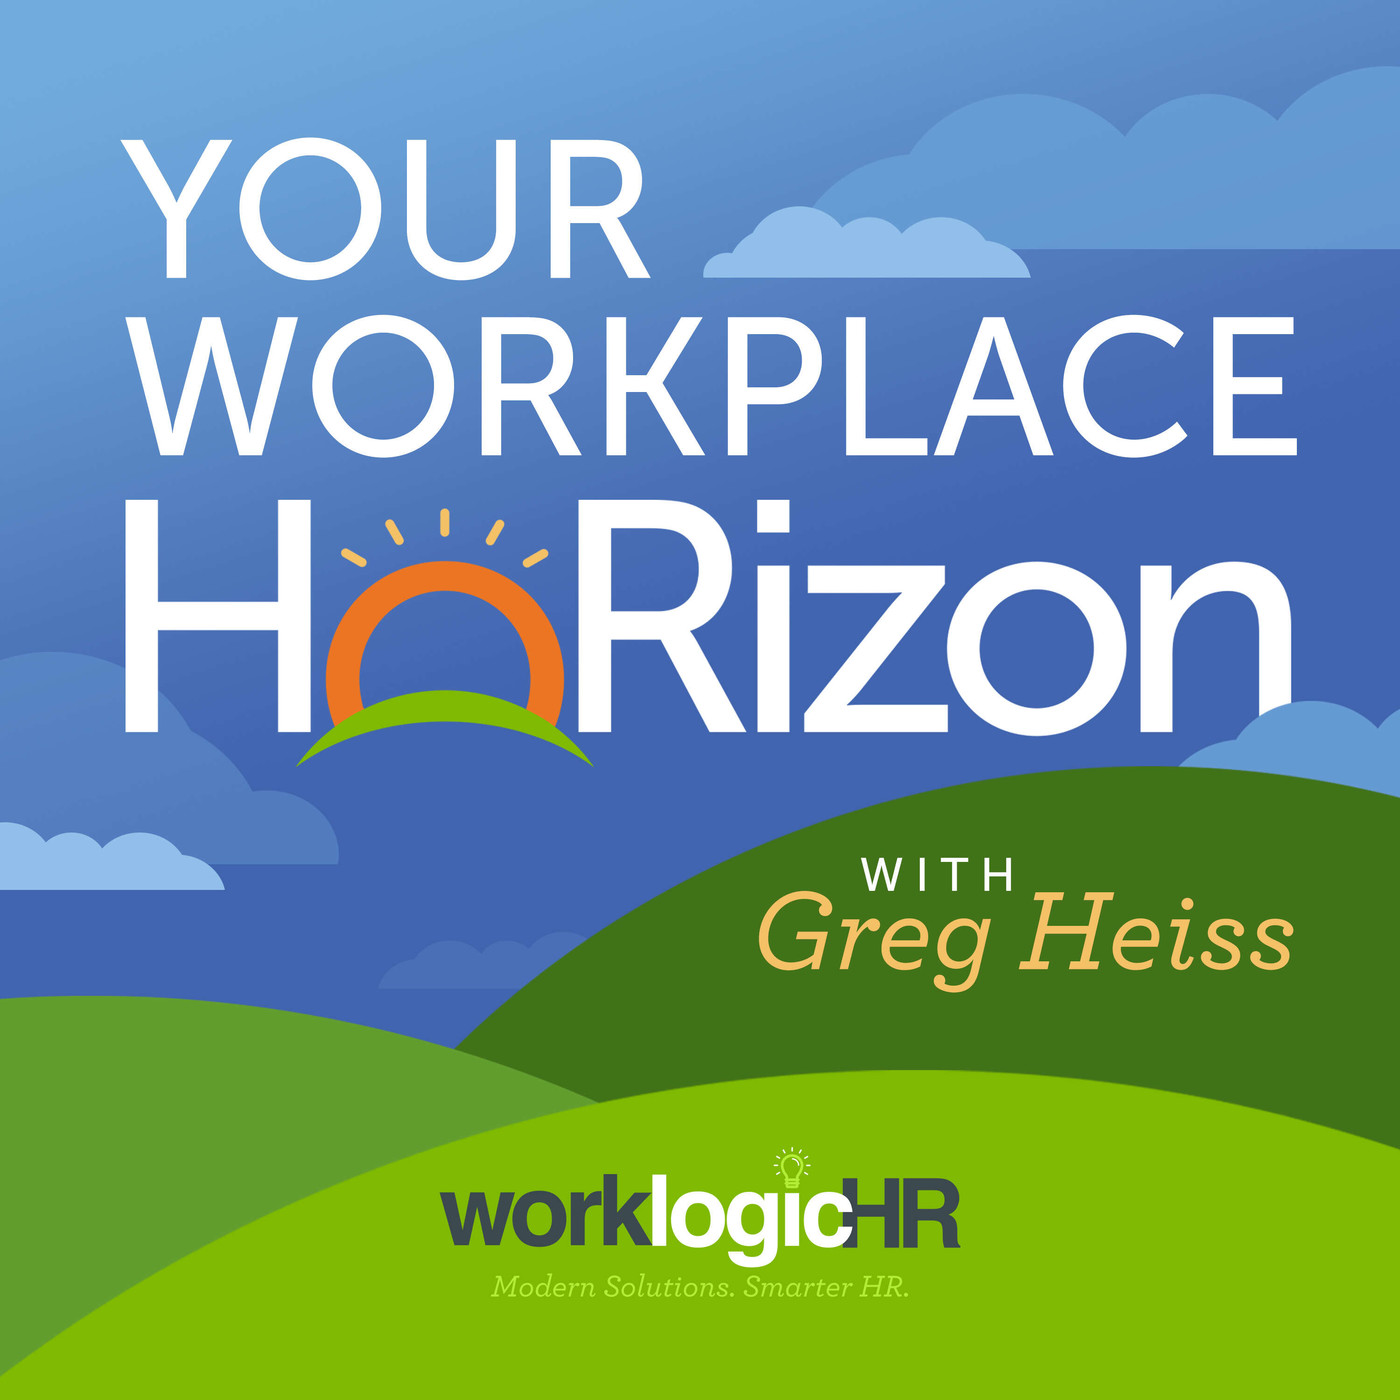 Fraternization in the Workplace - Some Answers